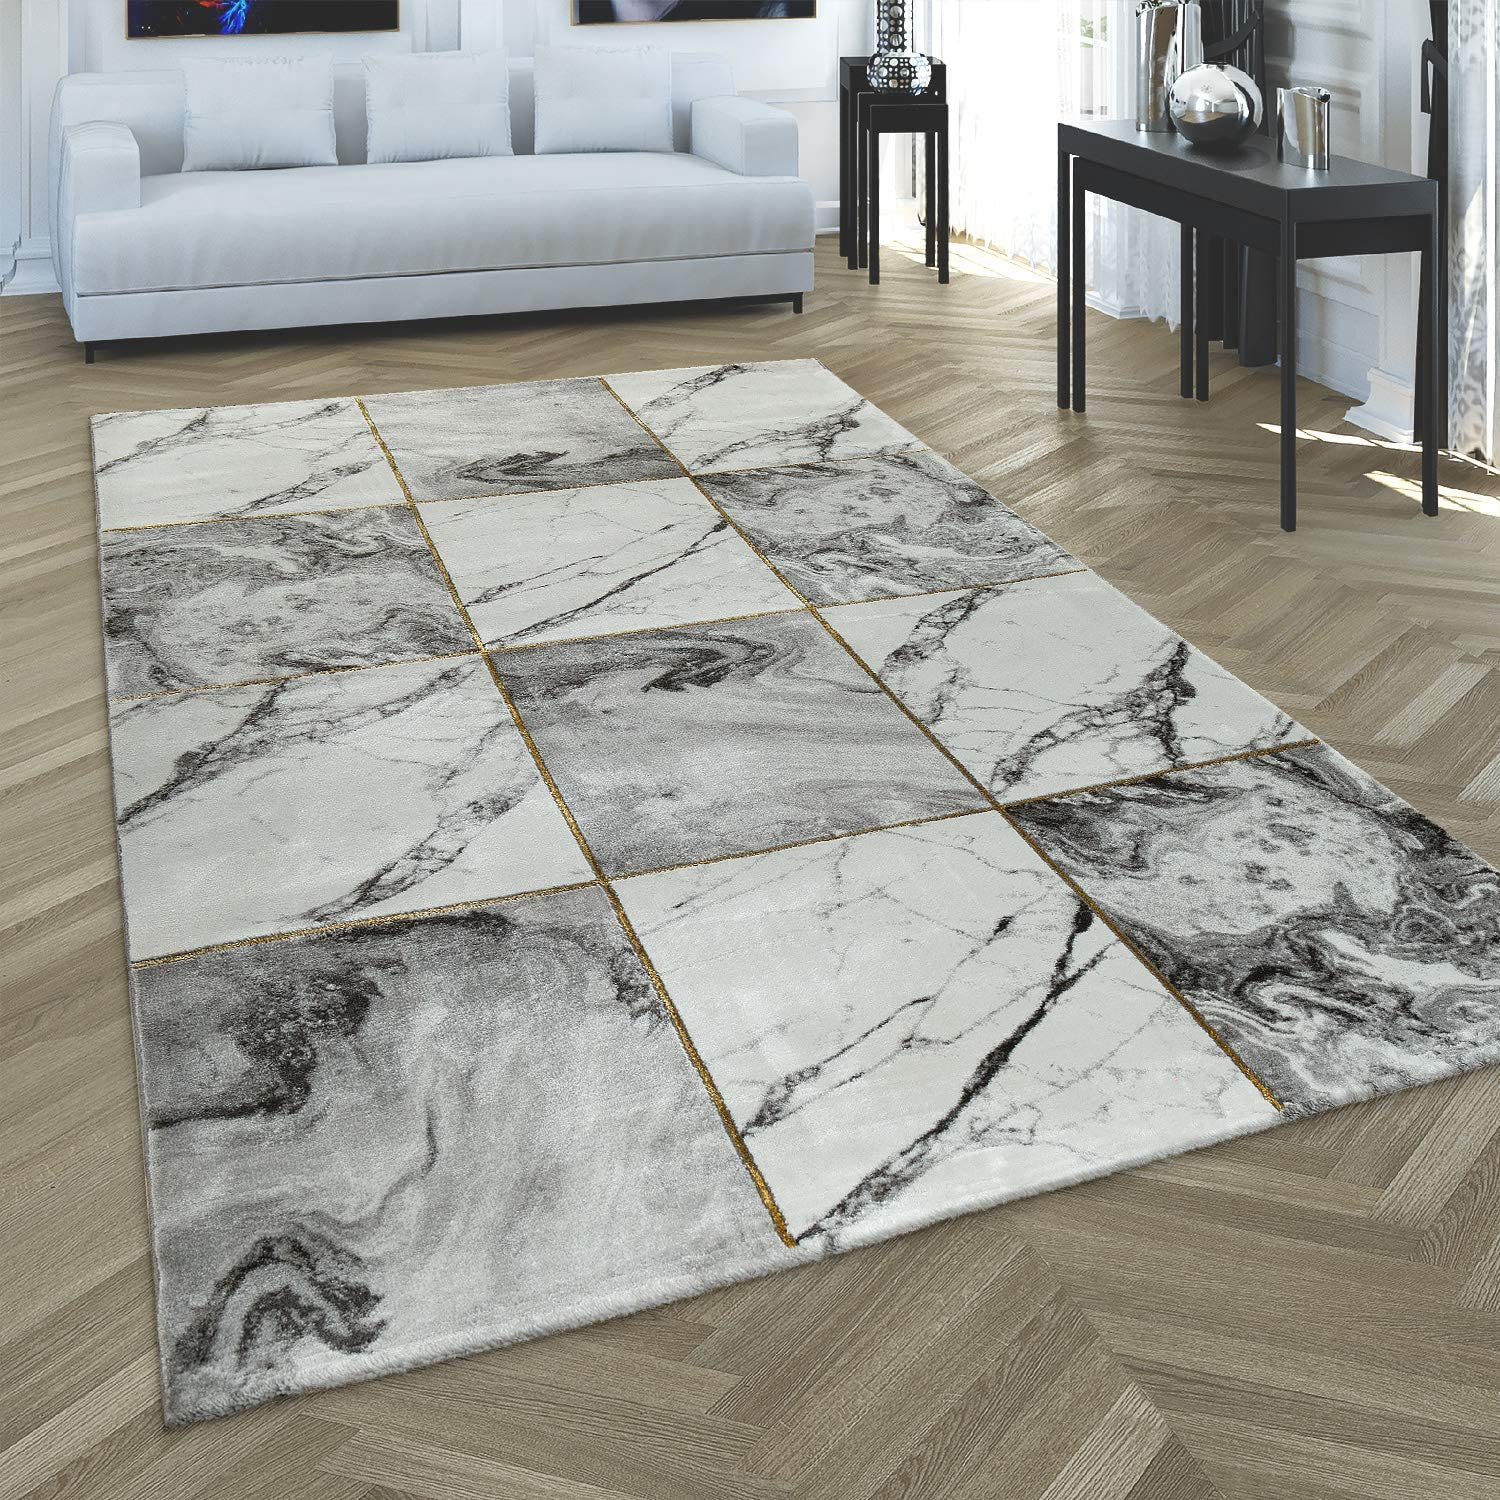 specialty shop Paco Home 2021 Living Room Rug Grey Marble Gold Soft Pattern Diamonds